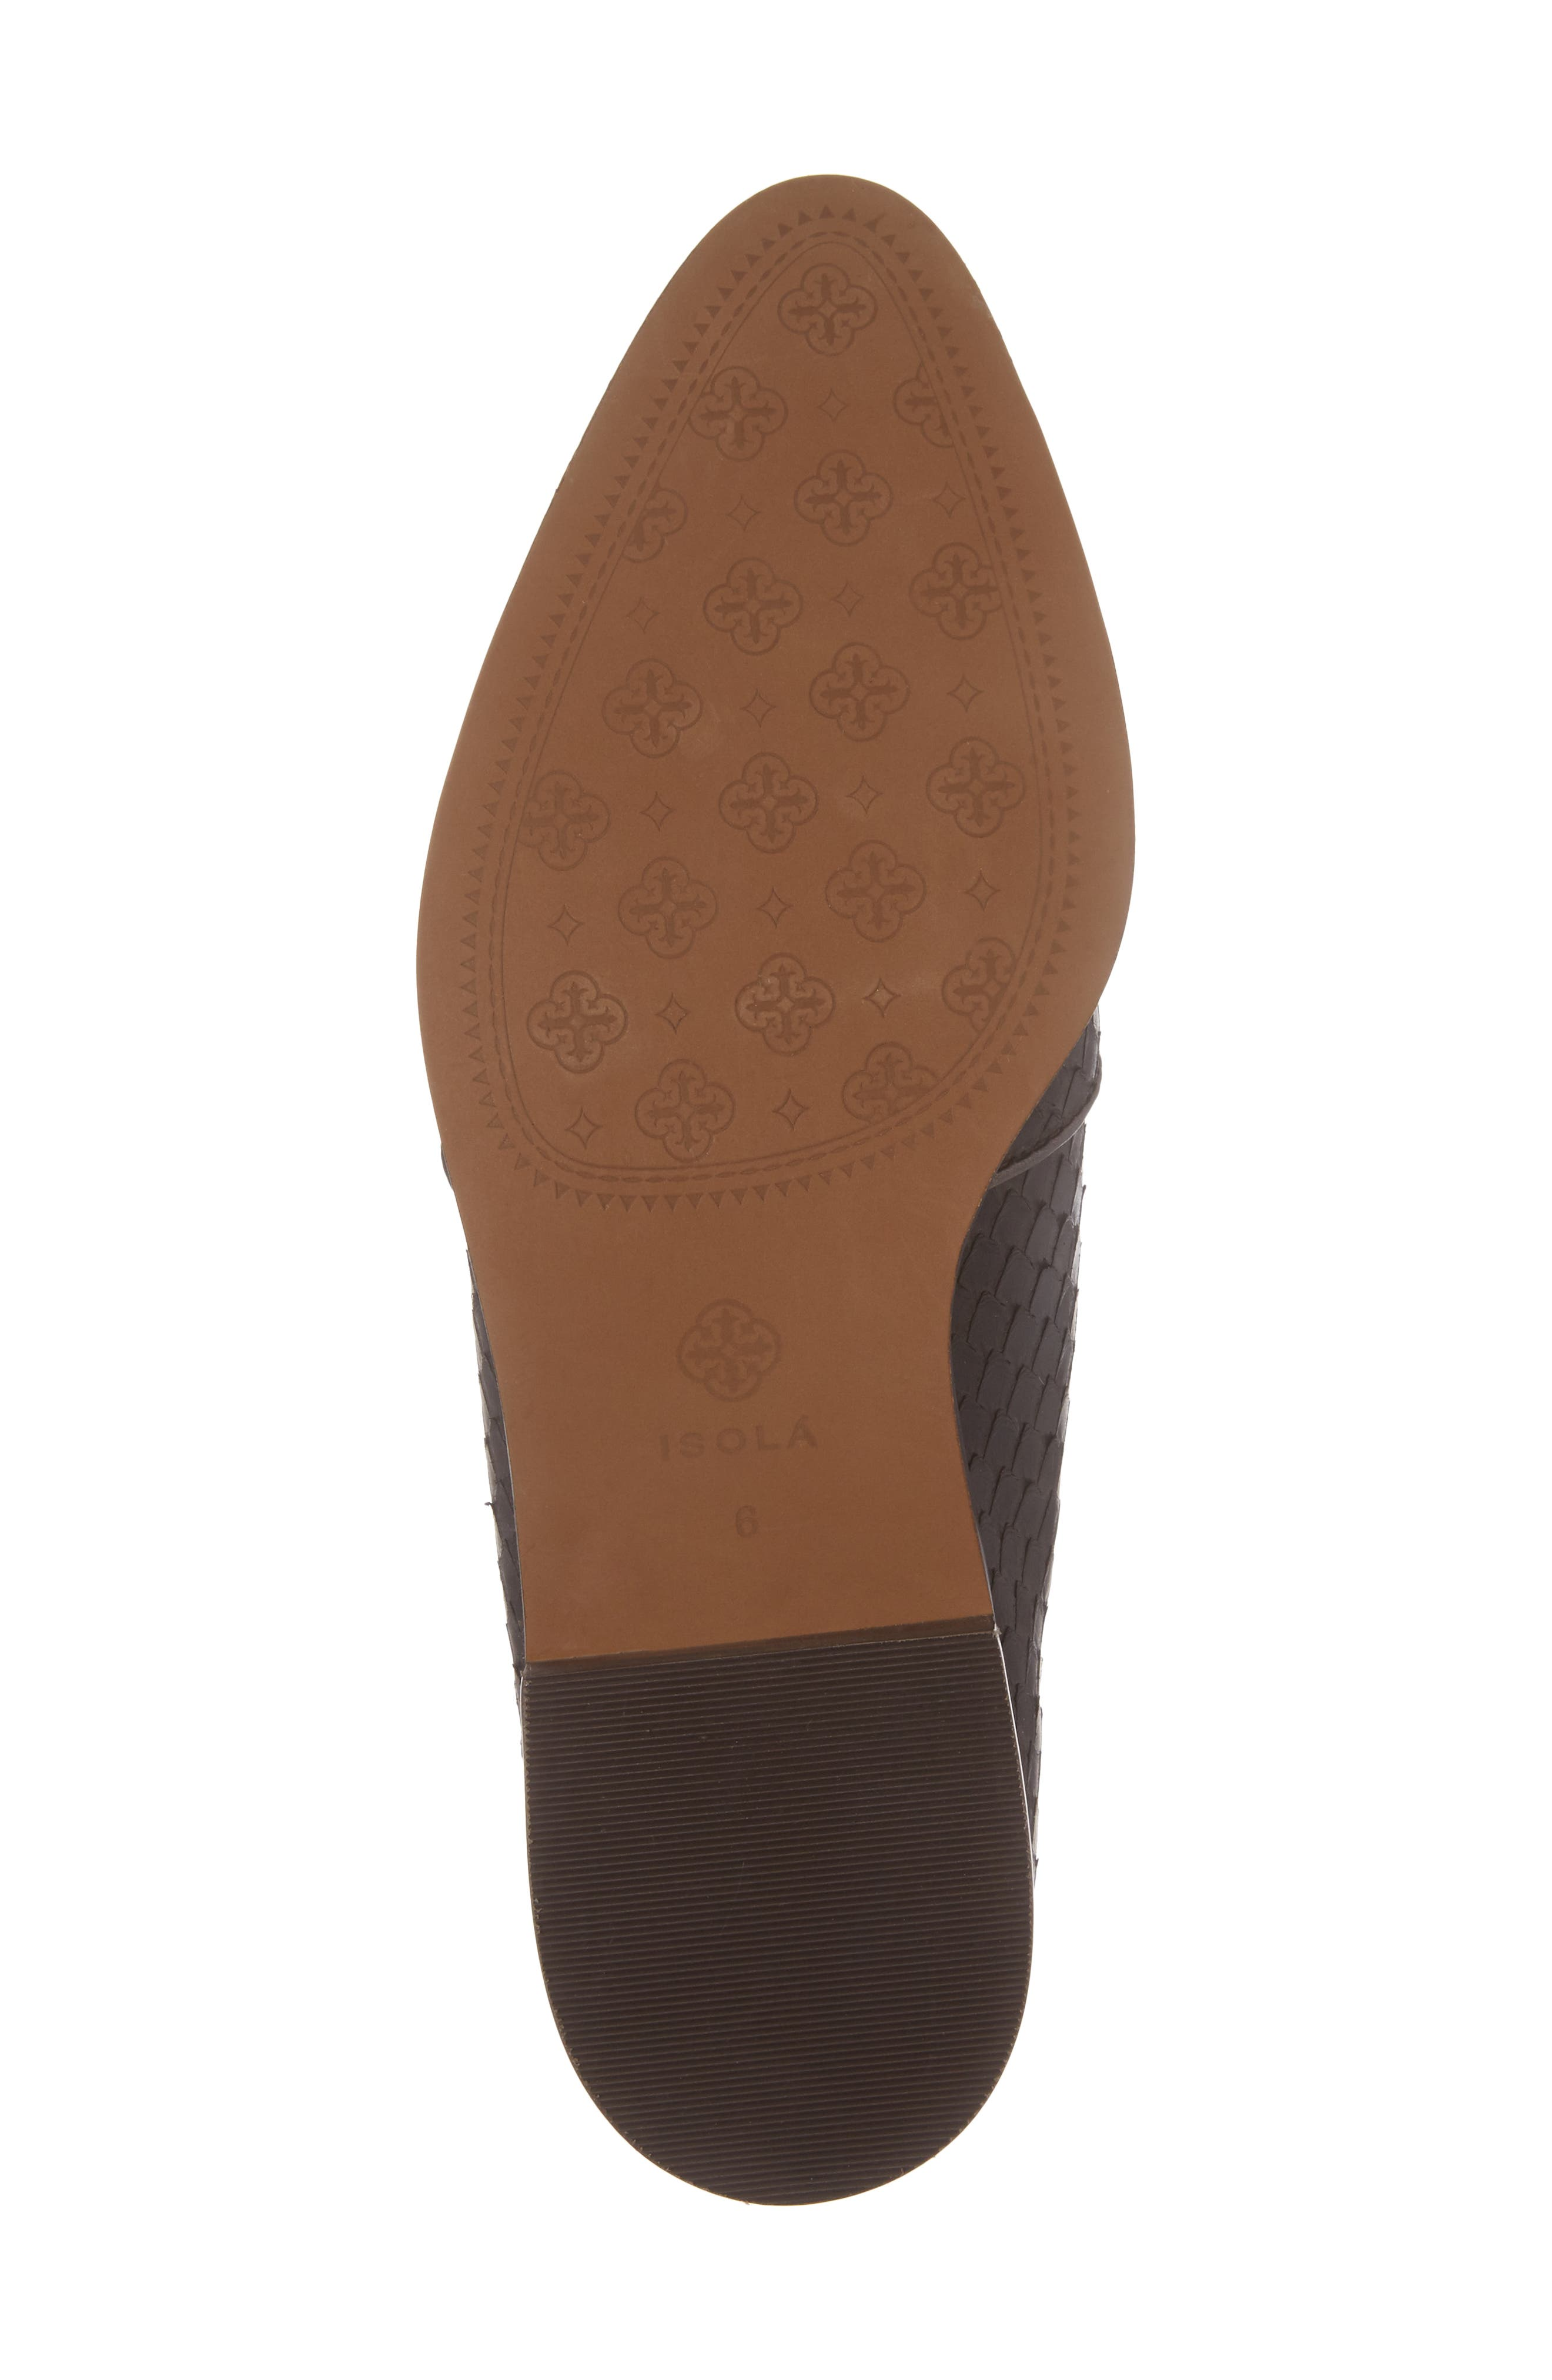 Isola Maria Slip-On Oxford,                             Alternate thumbnail 6, color,                             T. MORO BROWN LEATHER